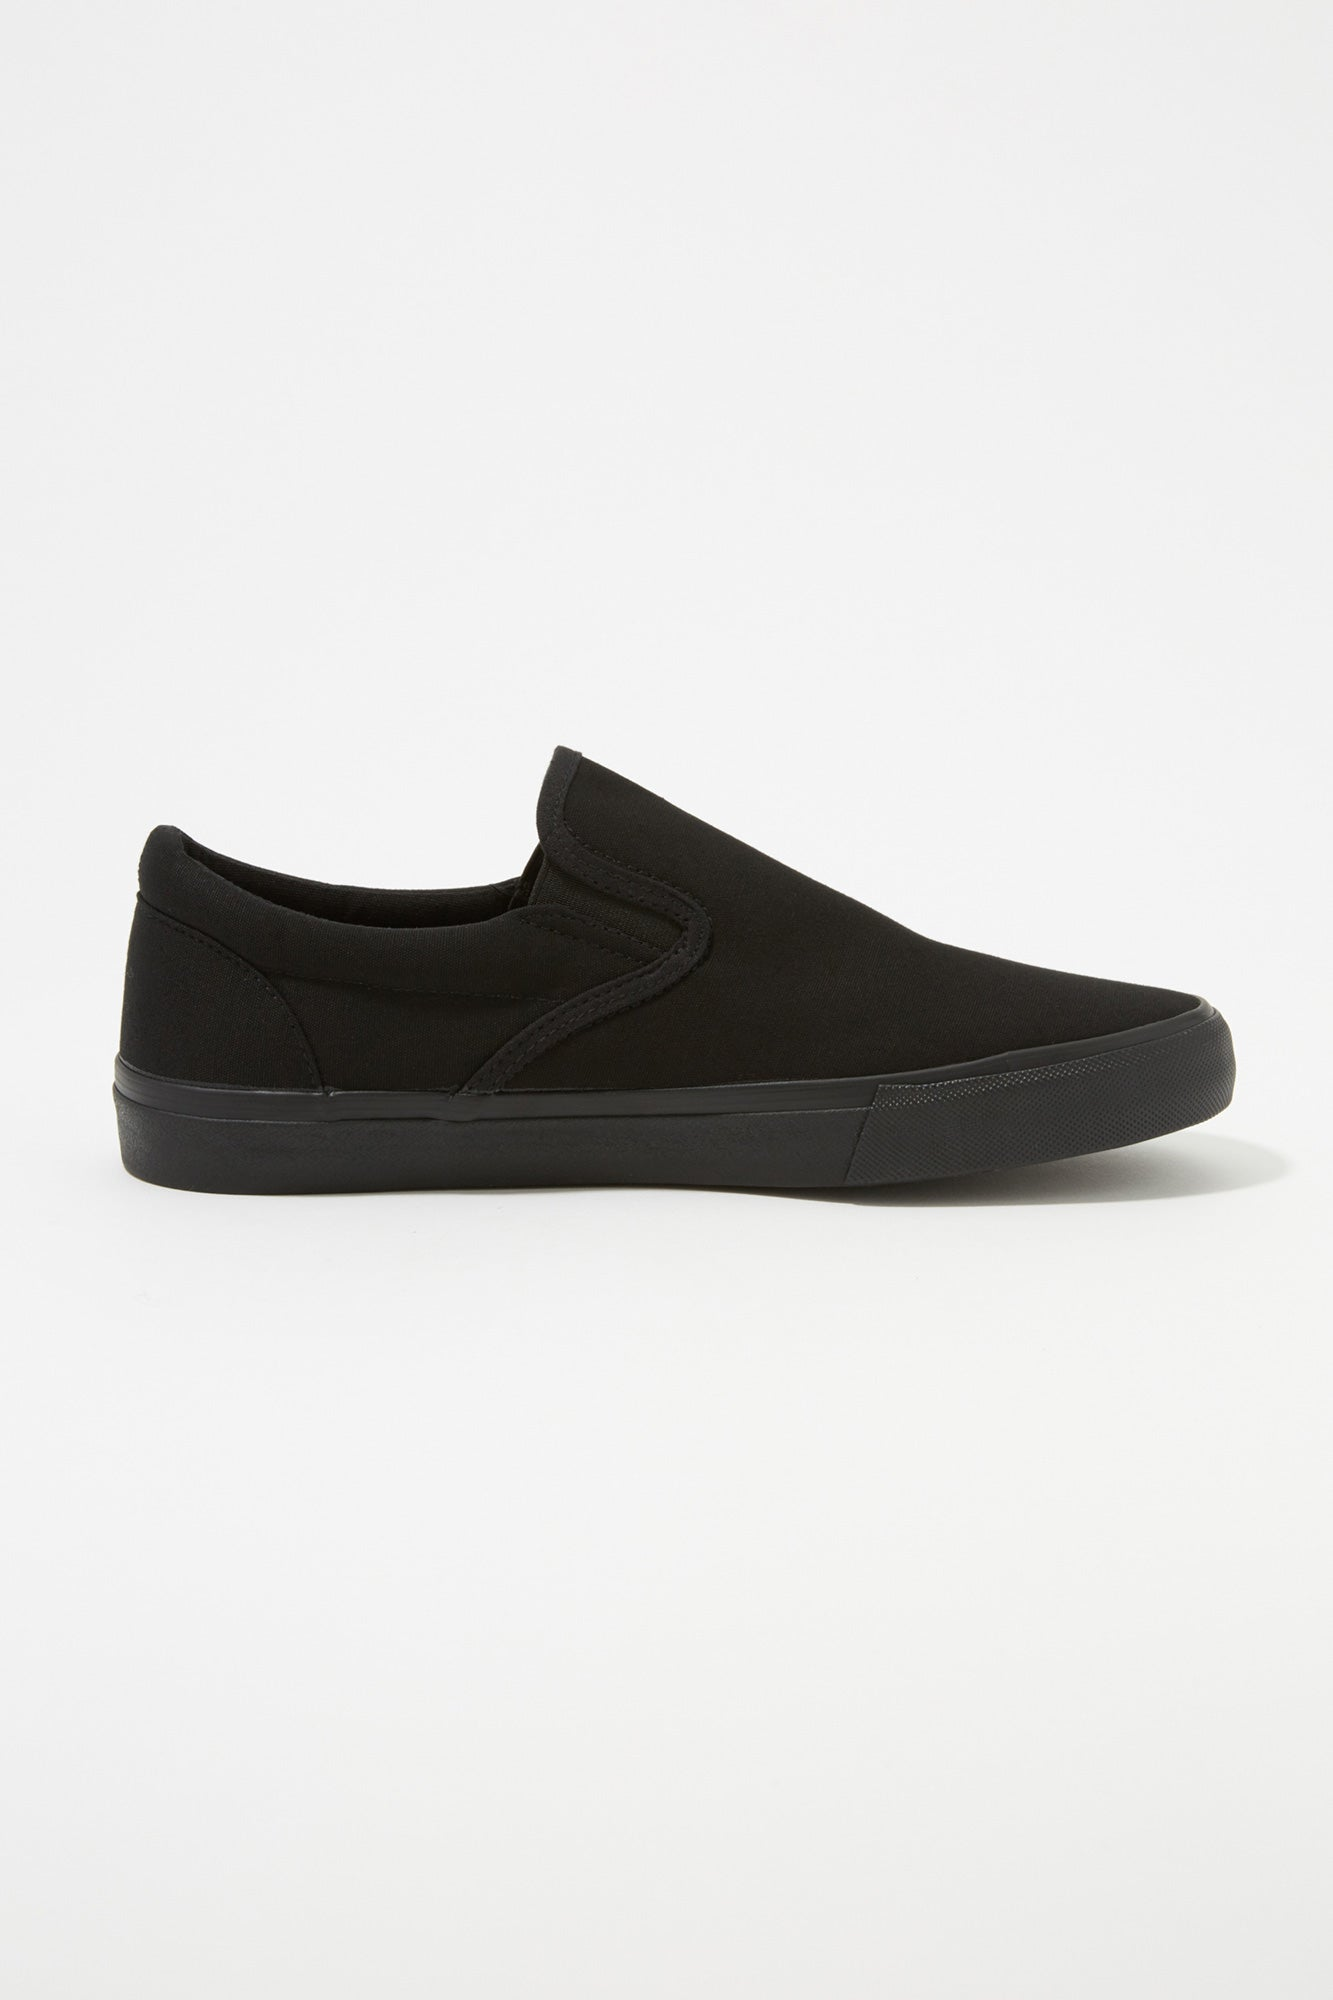 Zoo York Guys Canvas Slip-on Sneakers